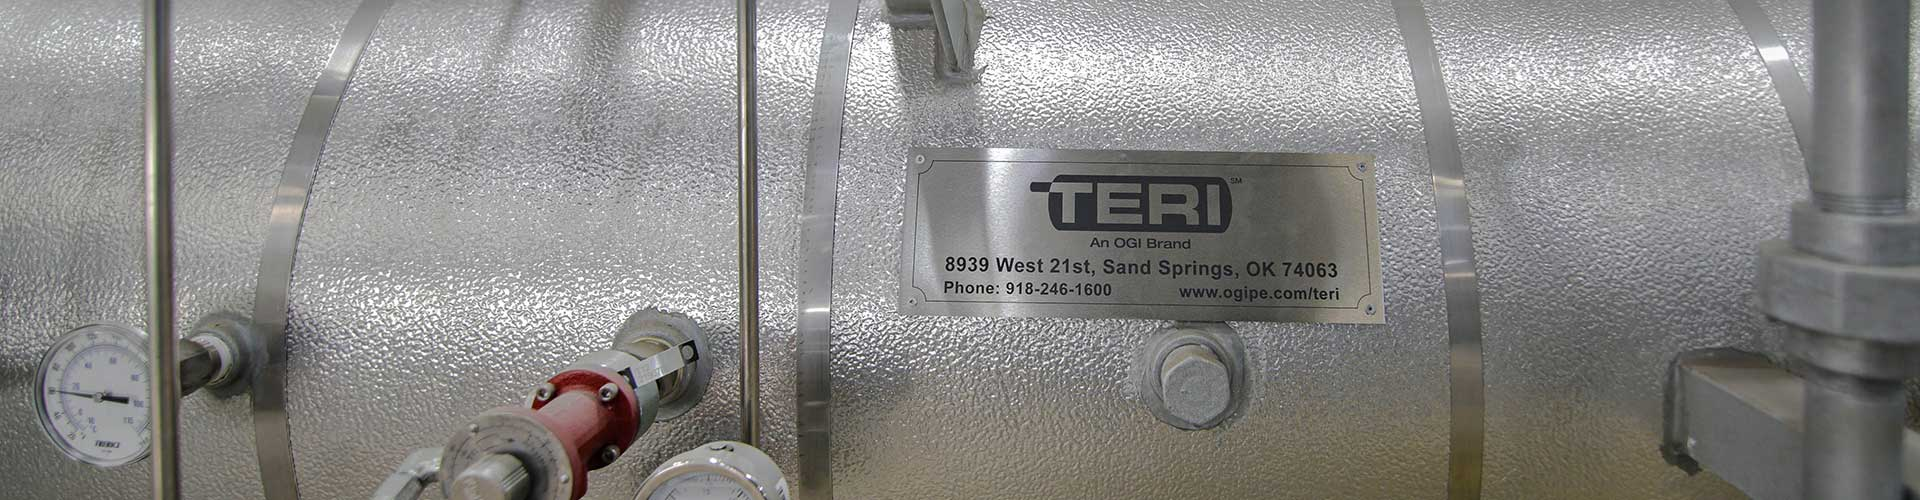 TERI Water Bath Heater